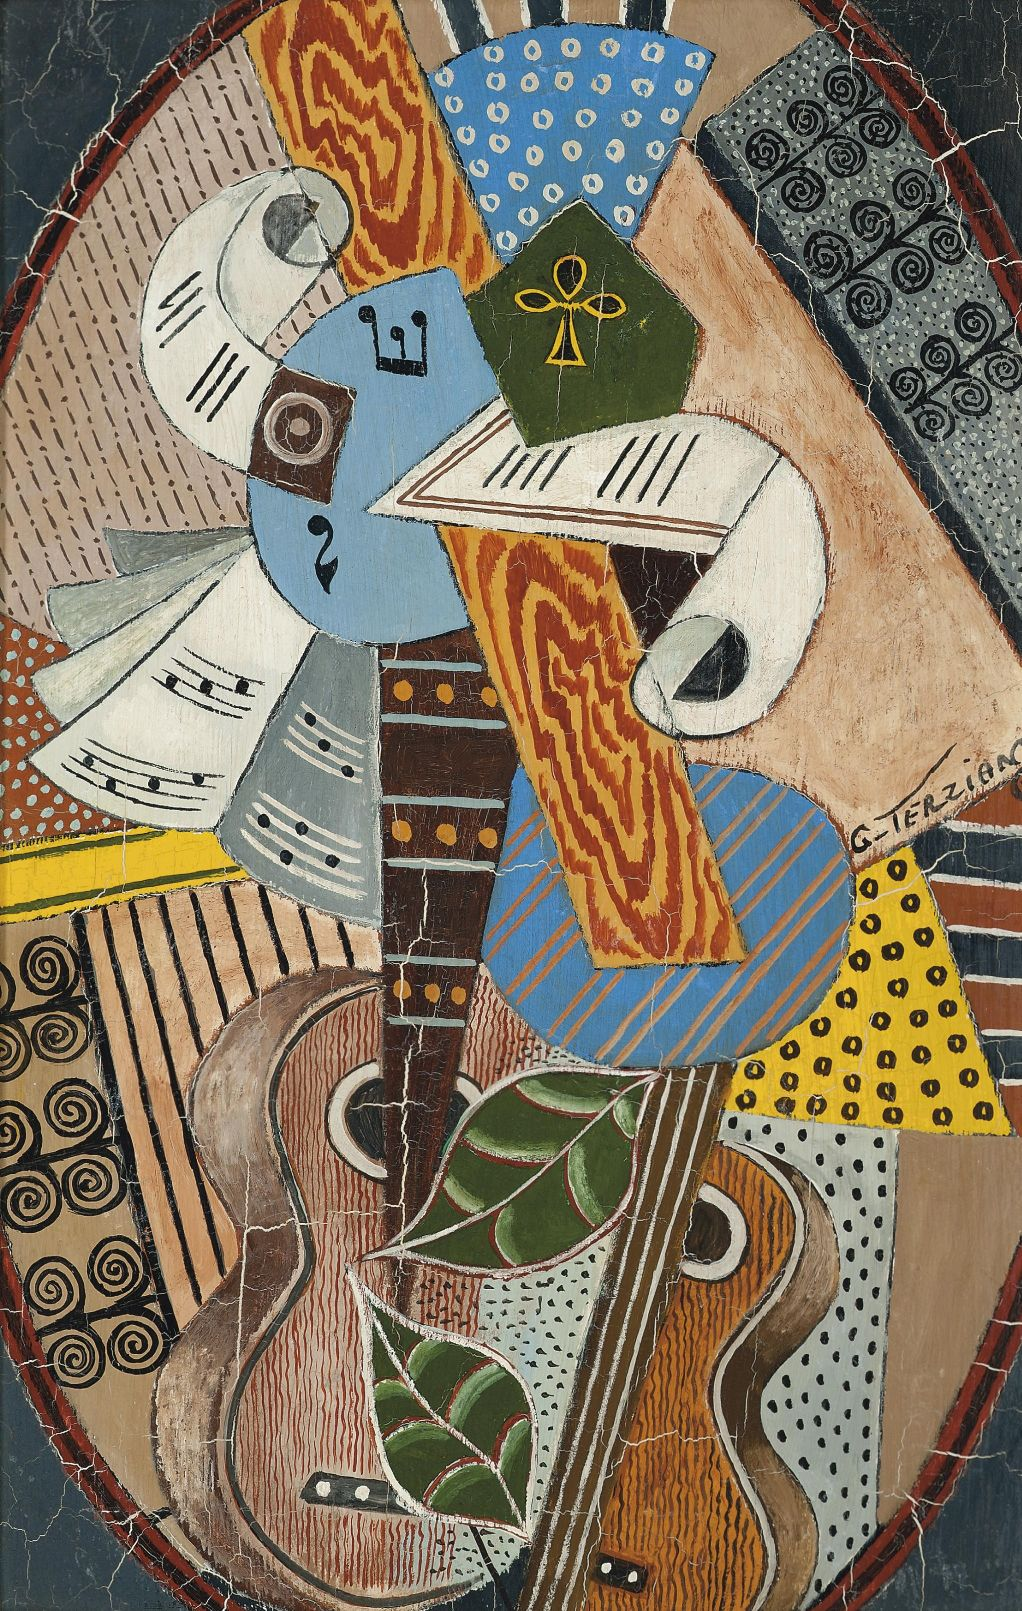 Les Deux Guitares By Georges Terzian With Images Obrazy Gitara